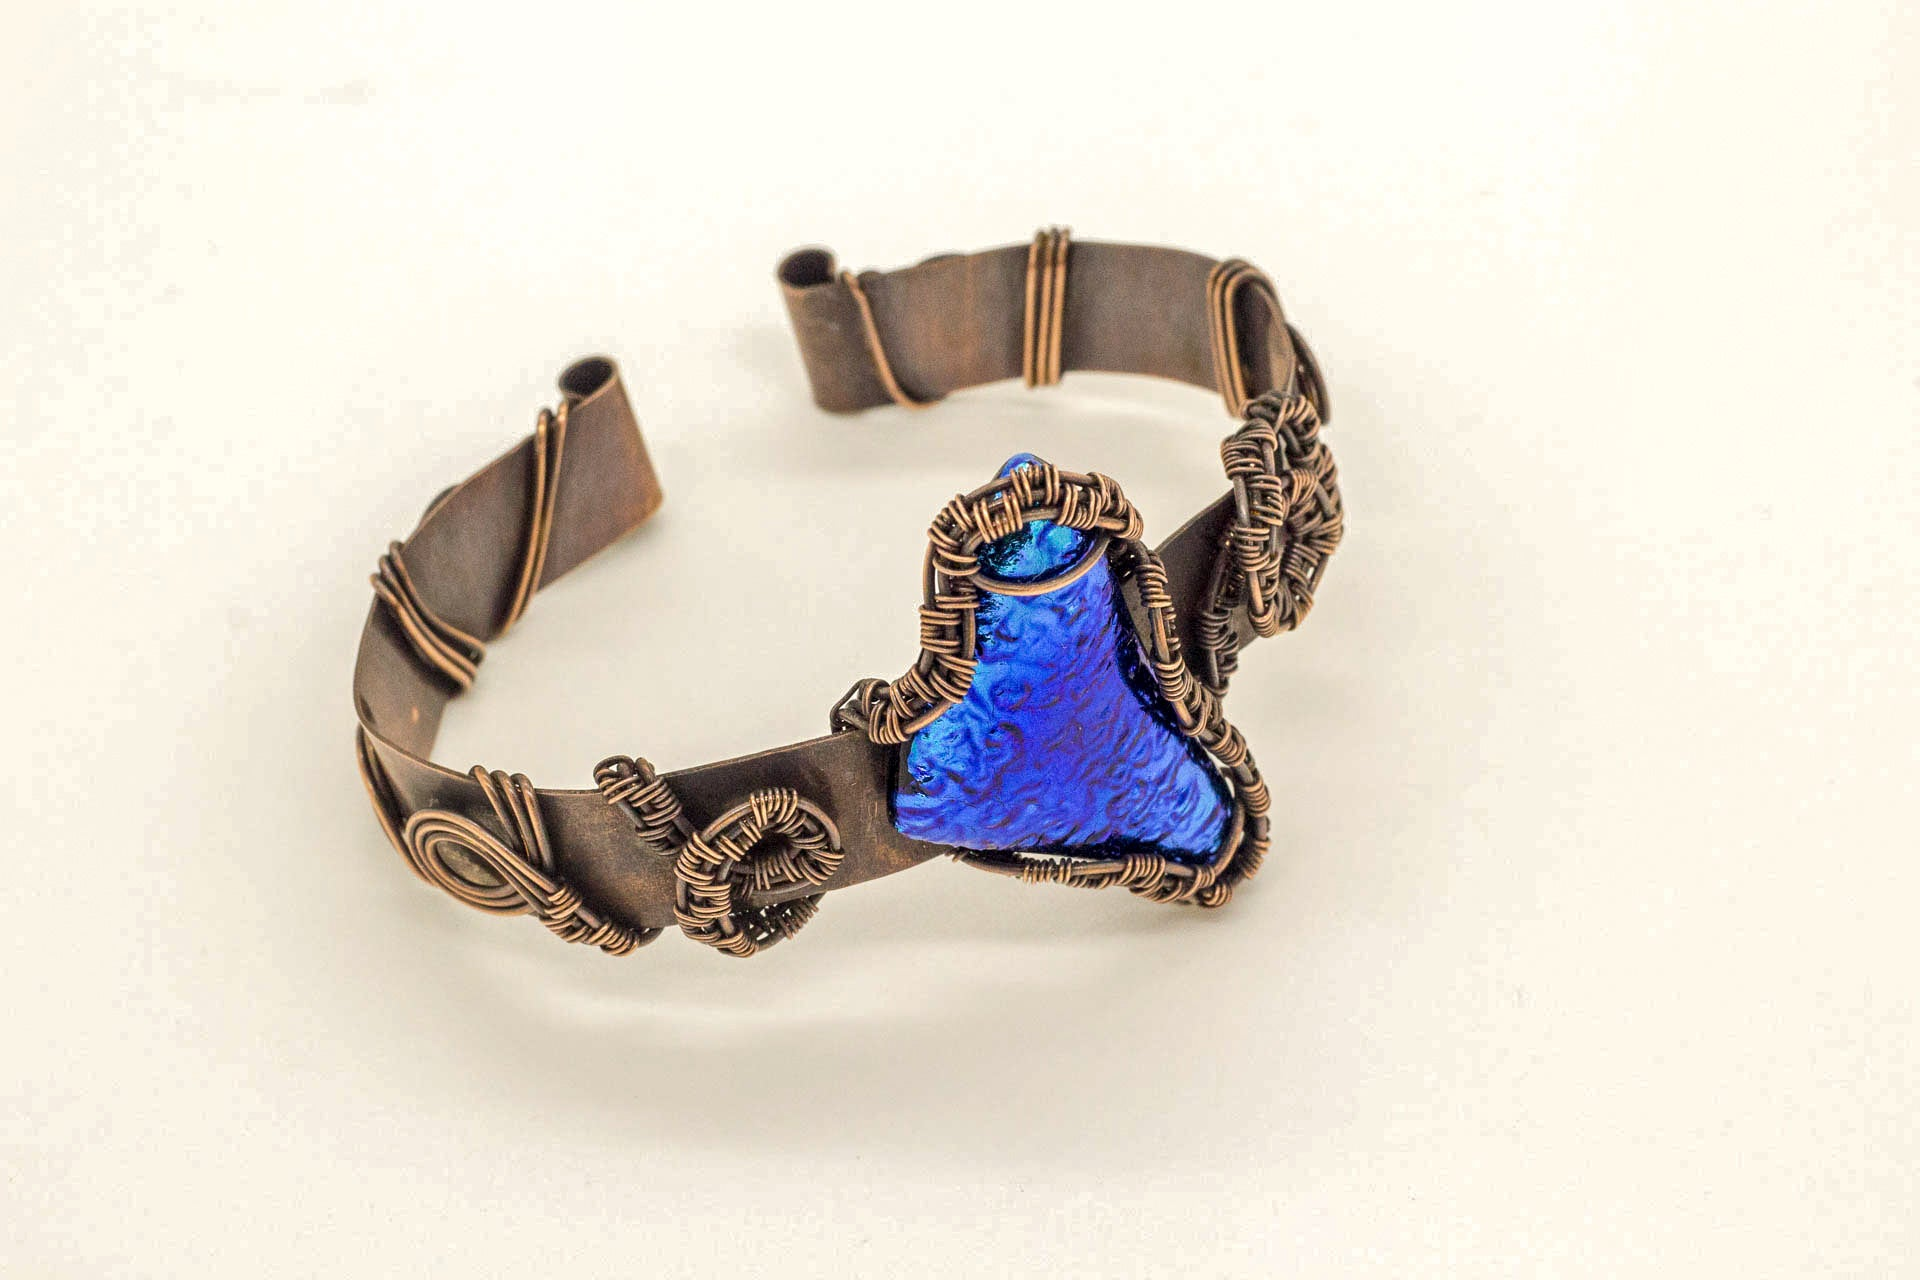 copper-cuff-bracelet-blue-dichroic-fused-glass-nymph-in-the-woods-jewelry